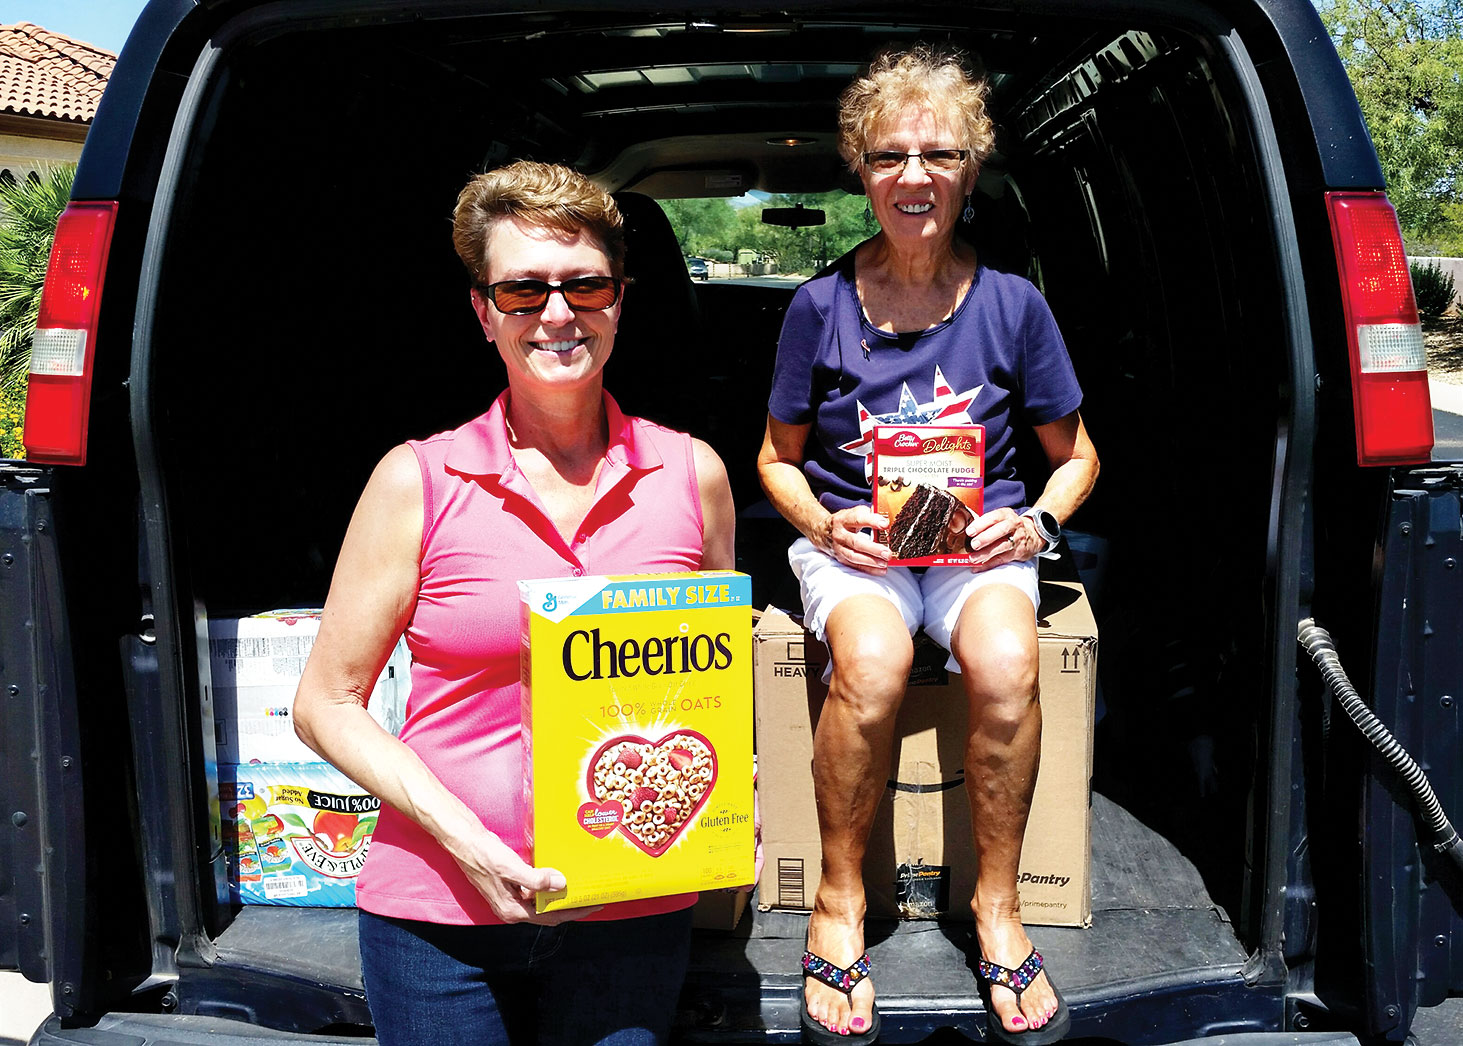 Left to right: Barbara Gavre and Peggy McGee show off just some of the grocery items that were donated during the Food for the Troops drive; photo by John McGee